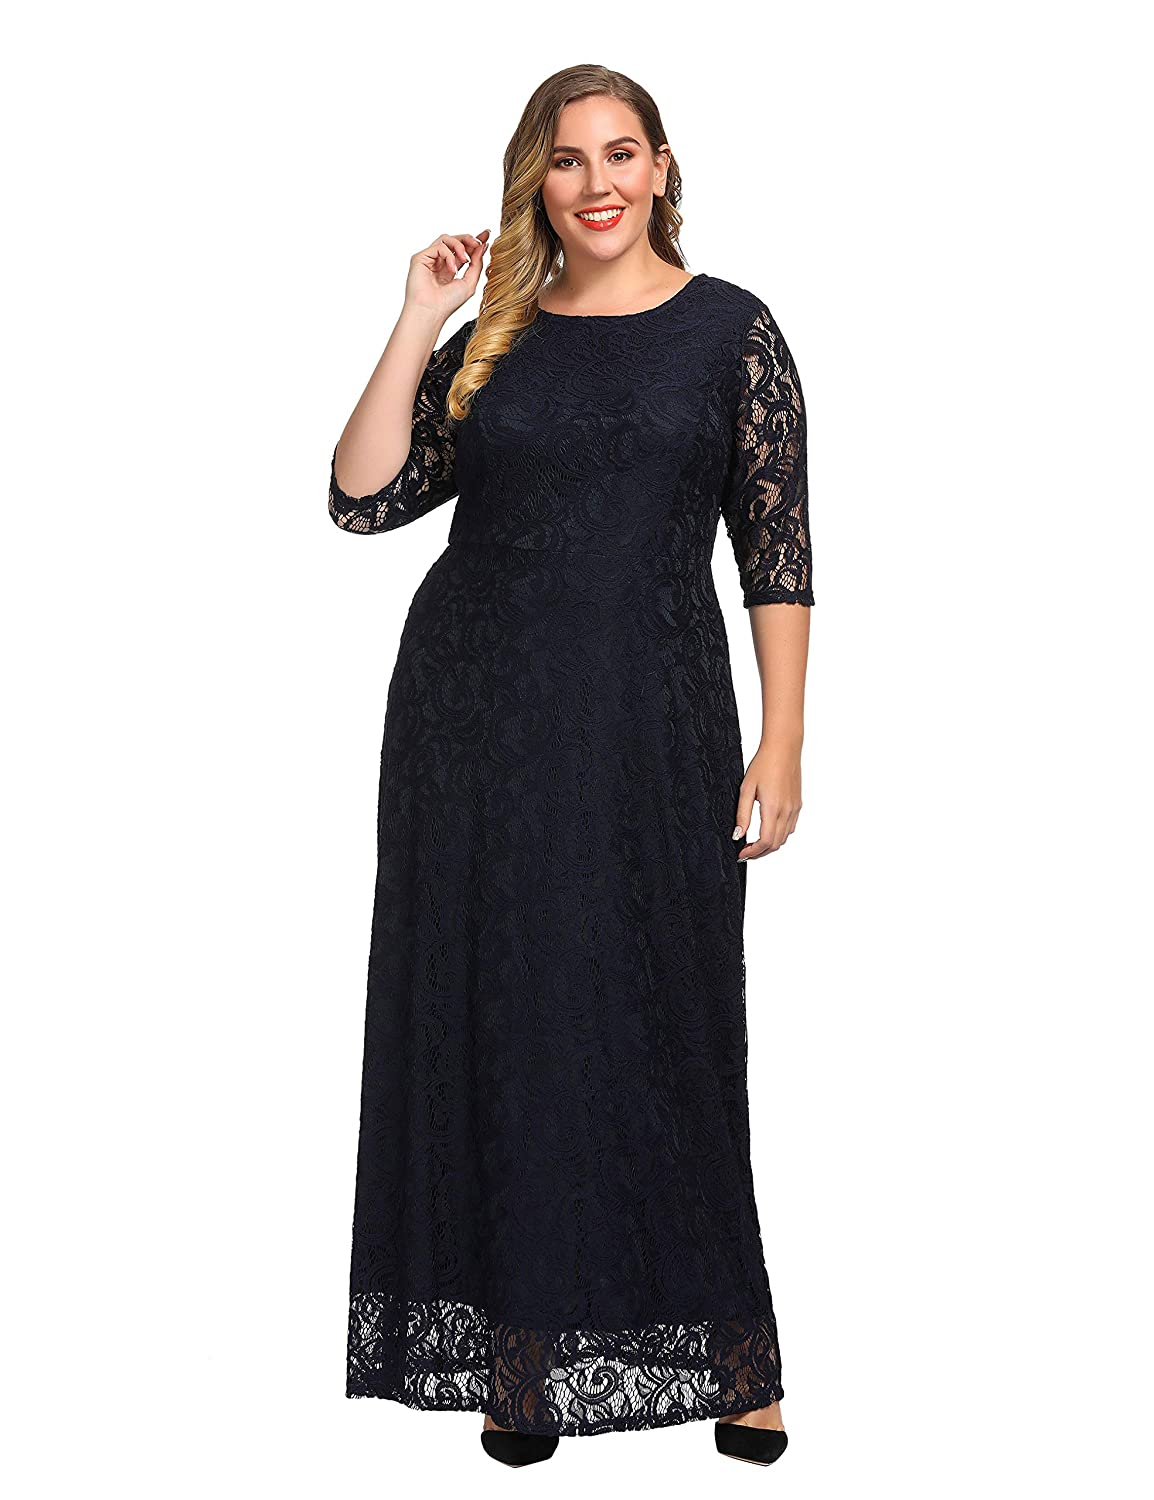 7e96a90bb8fe Chicwe Women's Plus Size Stretch Lace Maxi Dress - Evening Wedding Cocktail  Party Dress at Amazon Women's Clothing store: